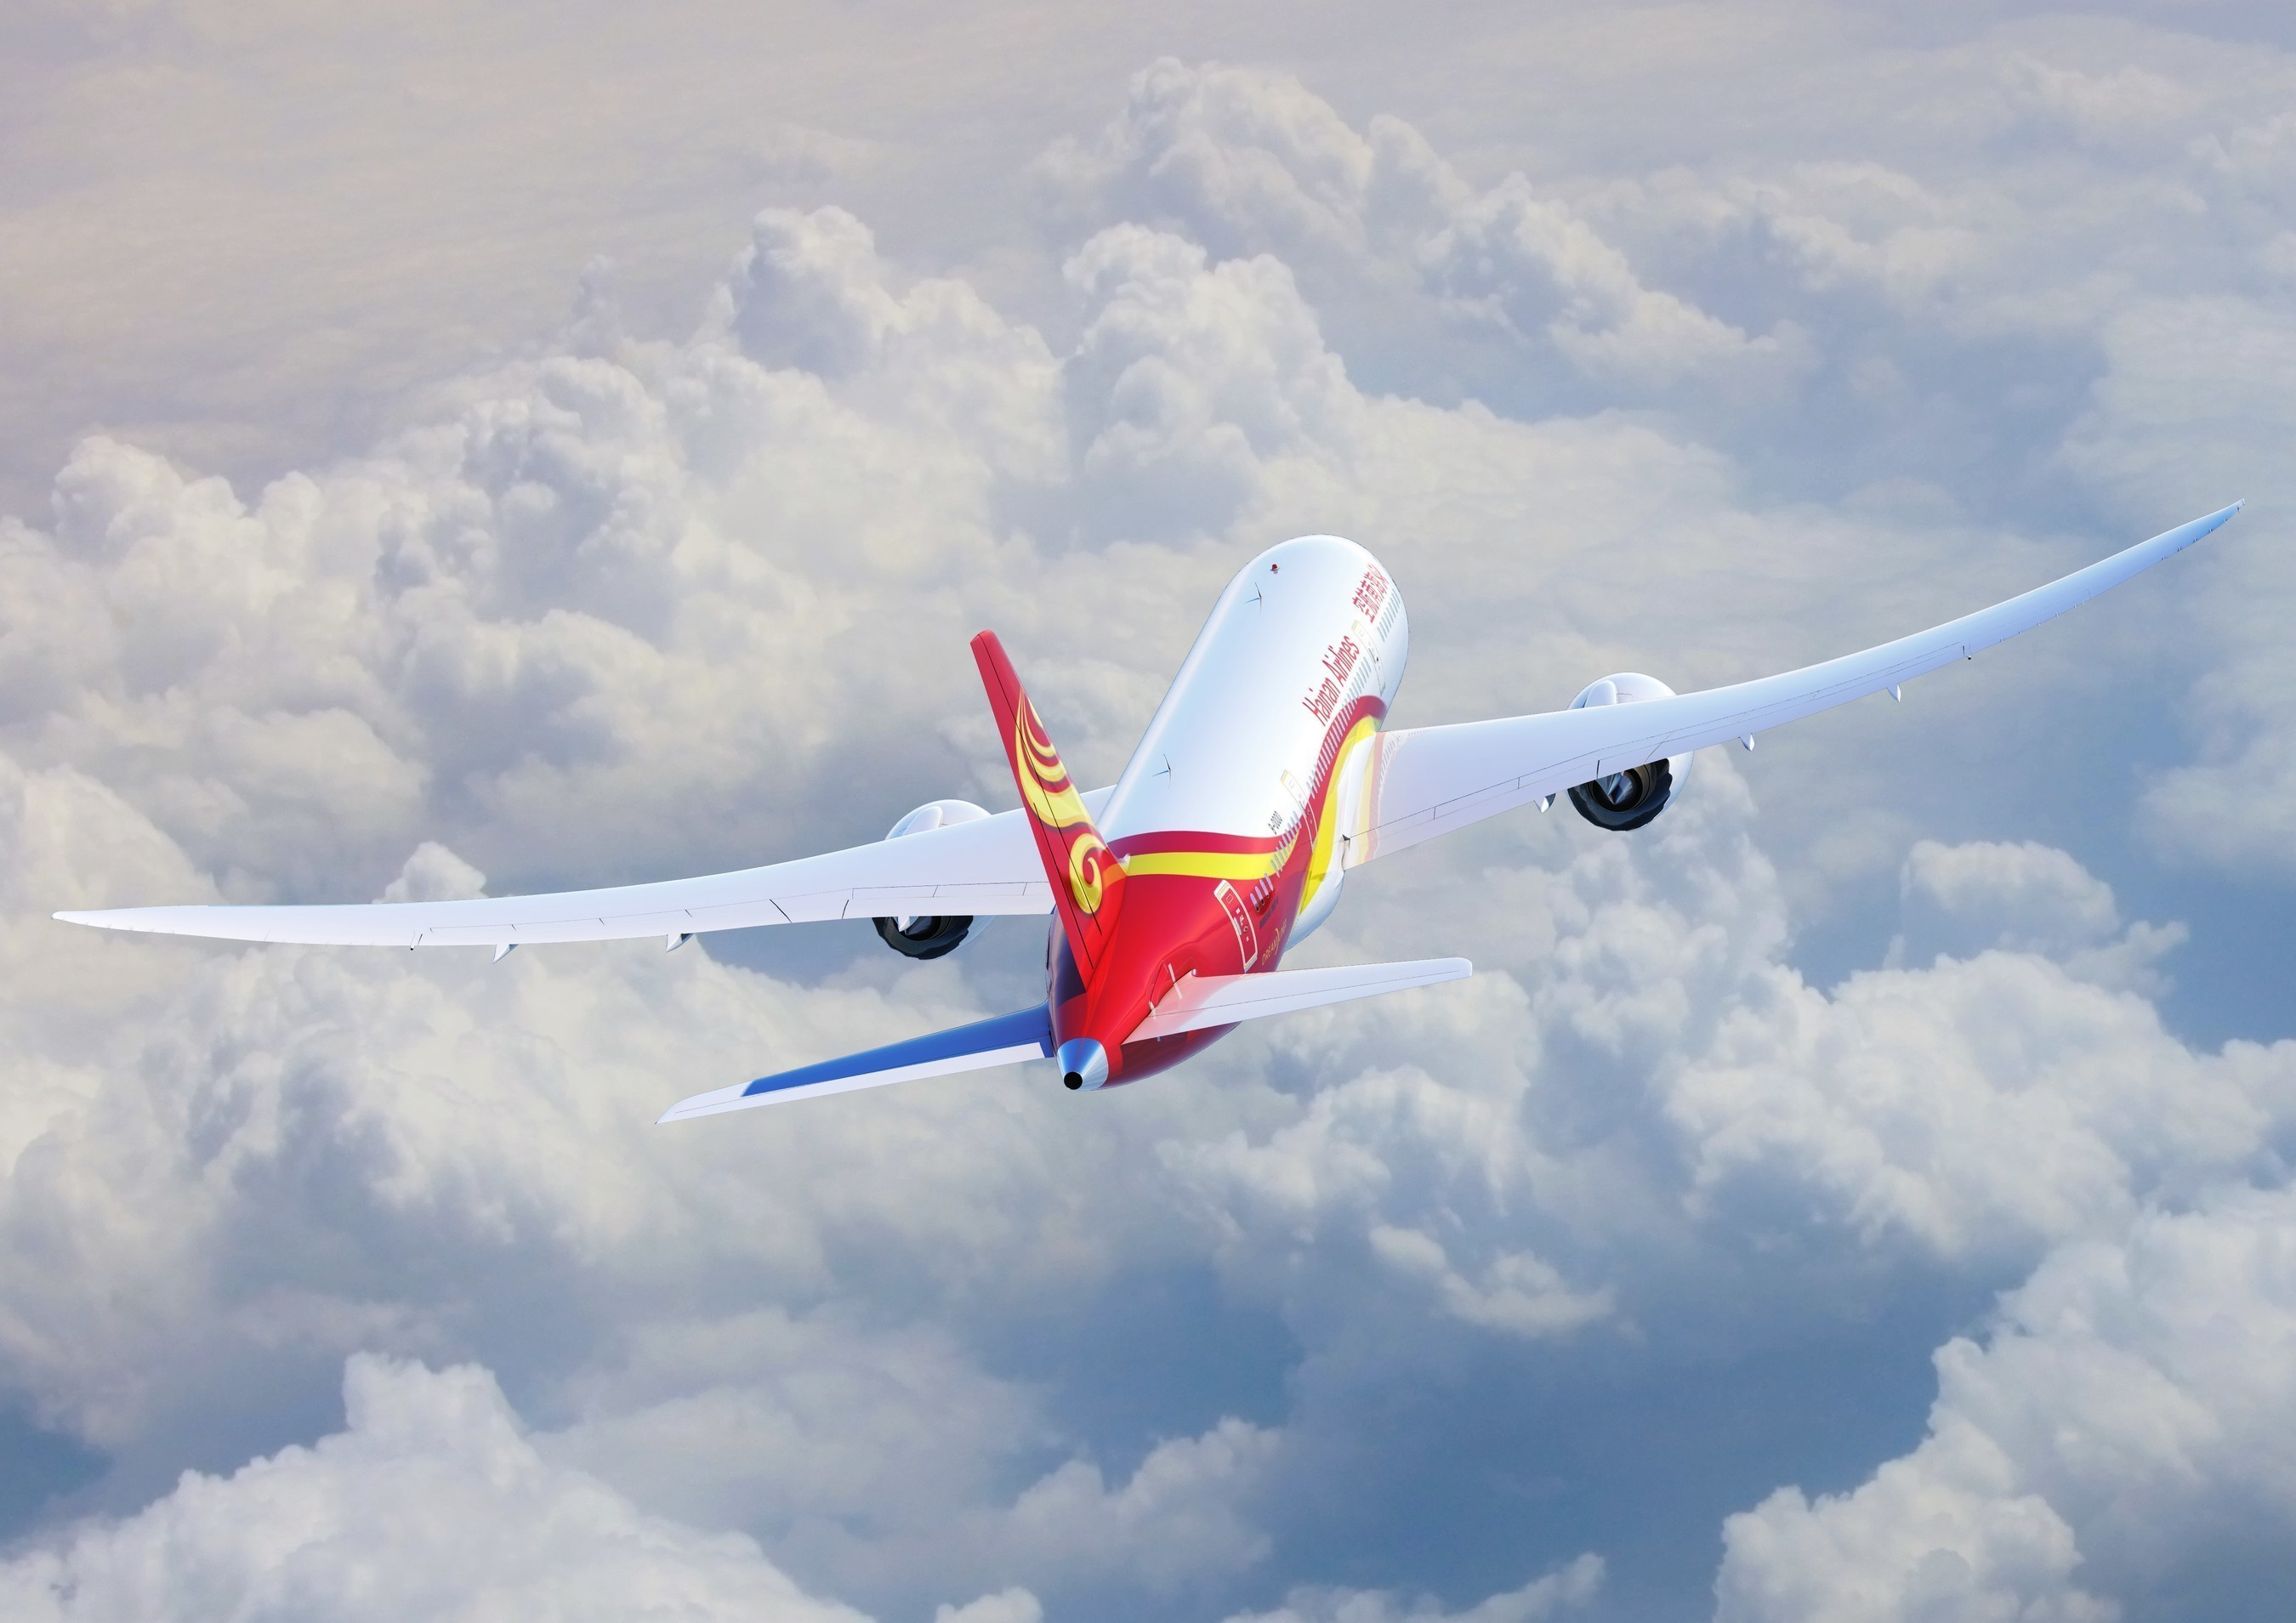 All Hainan flights between China and the United States feature the Boeing 787 Dreamliner, including new service between LAX and Changsha.